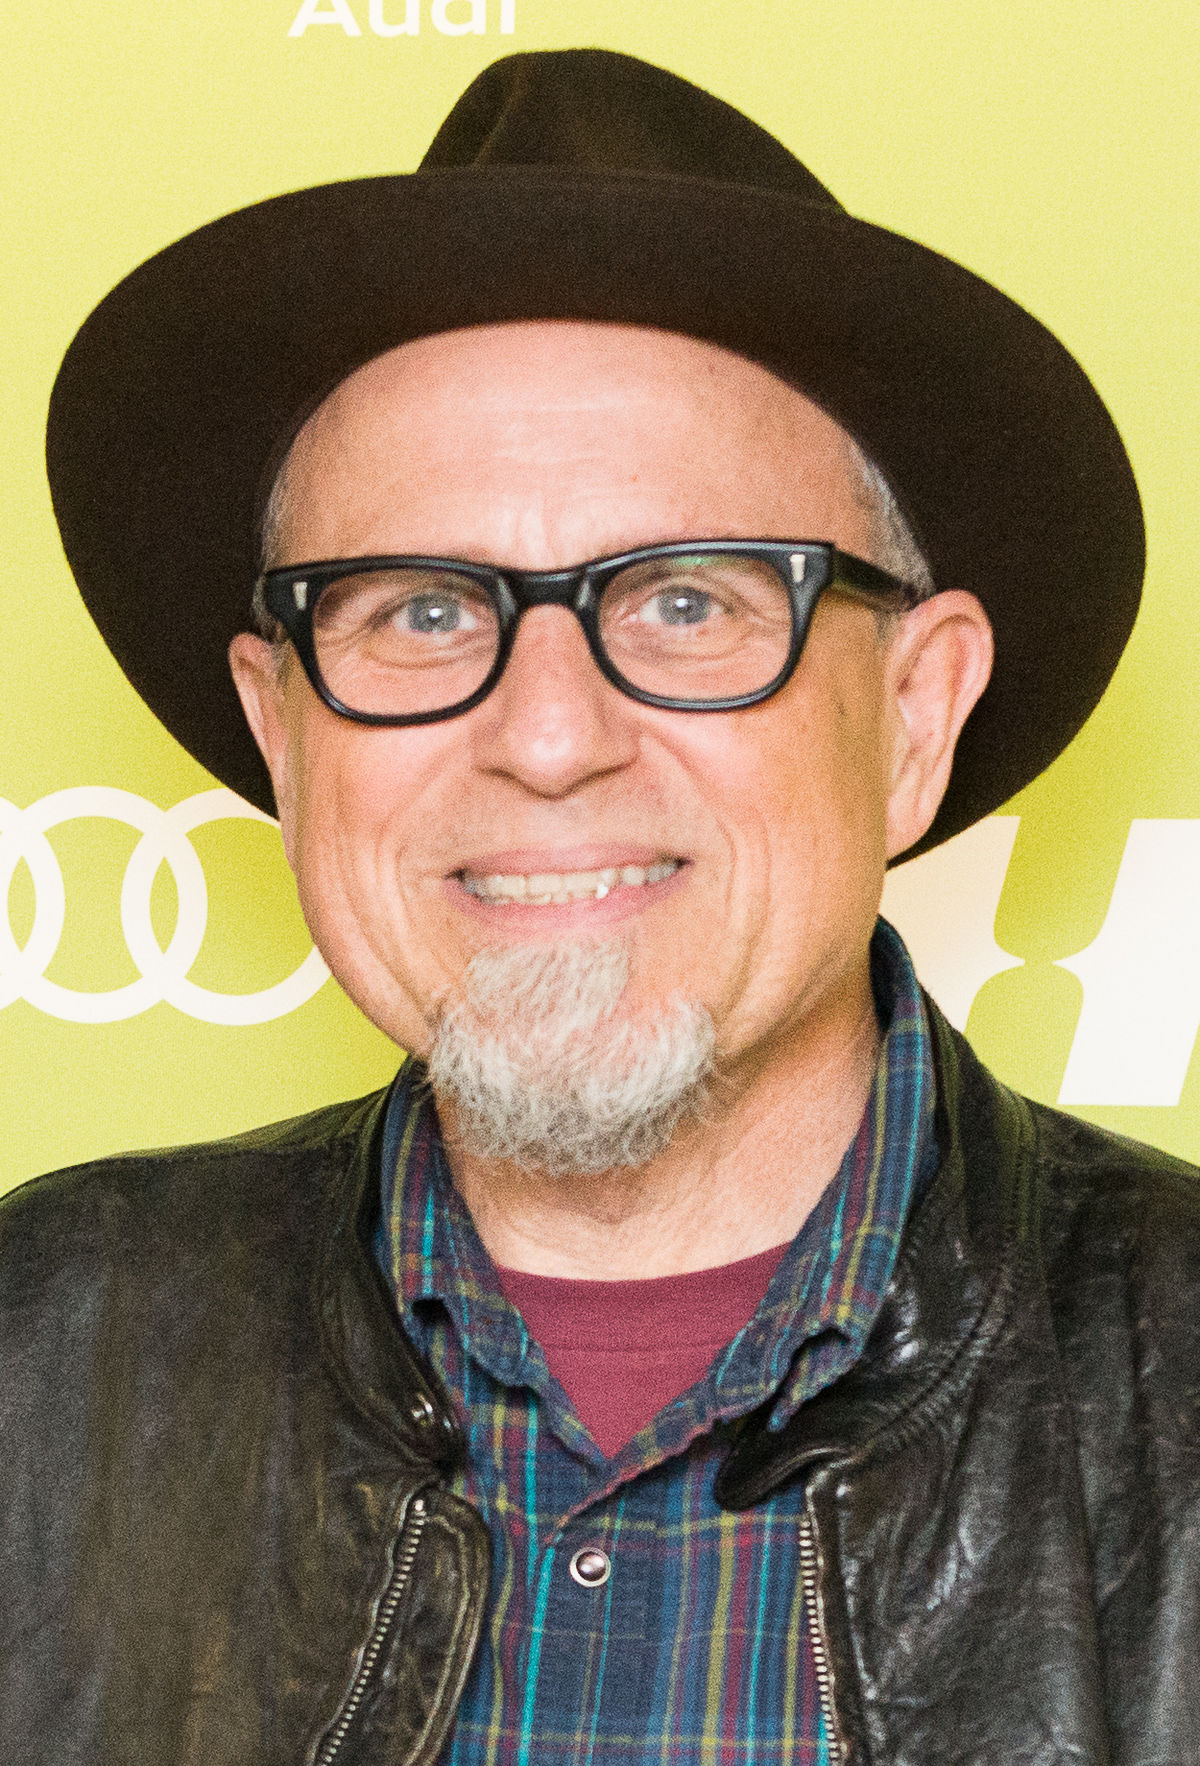 Bobcat Goldthwait - Wikipedia